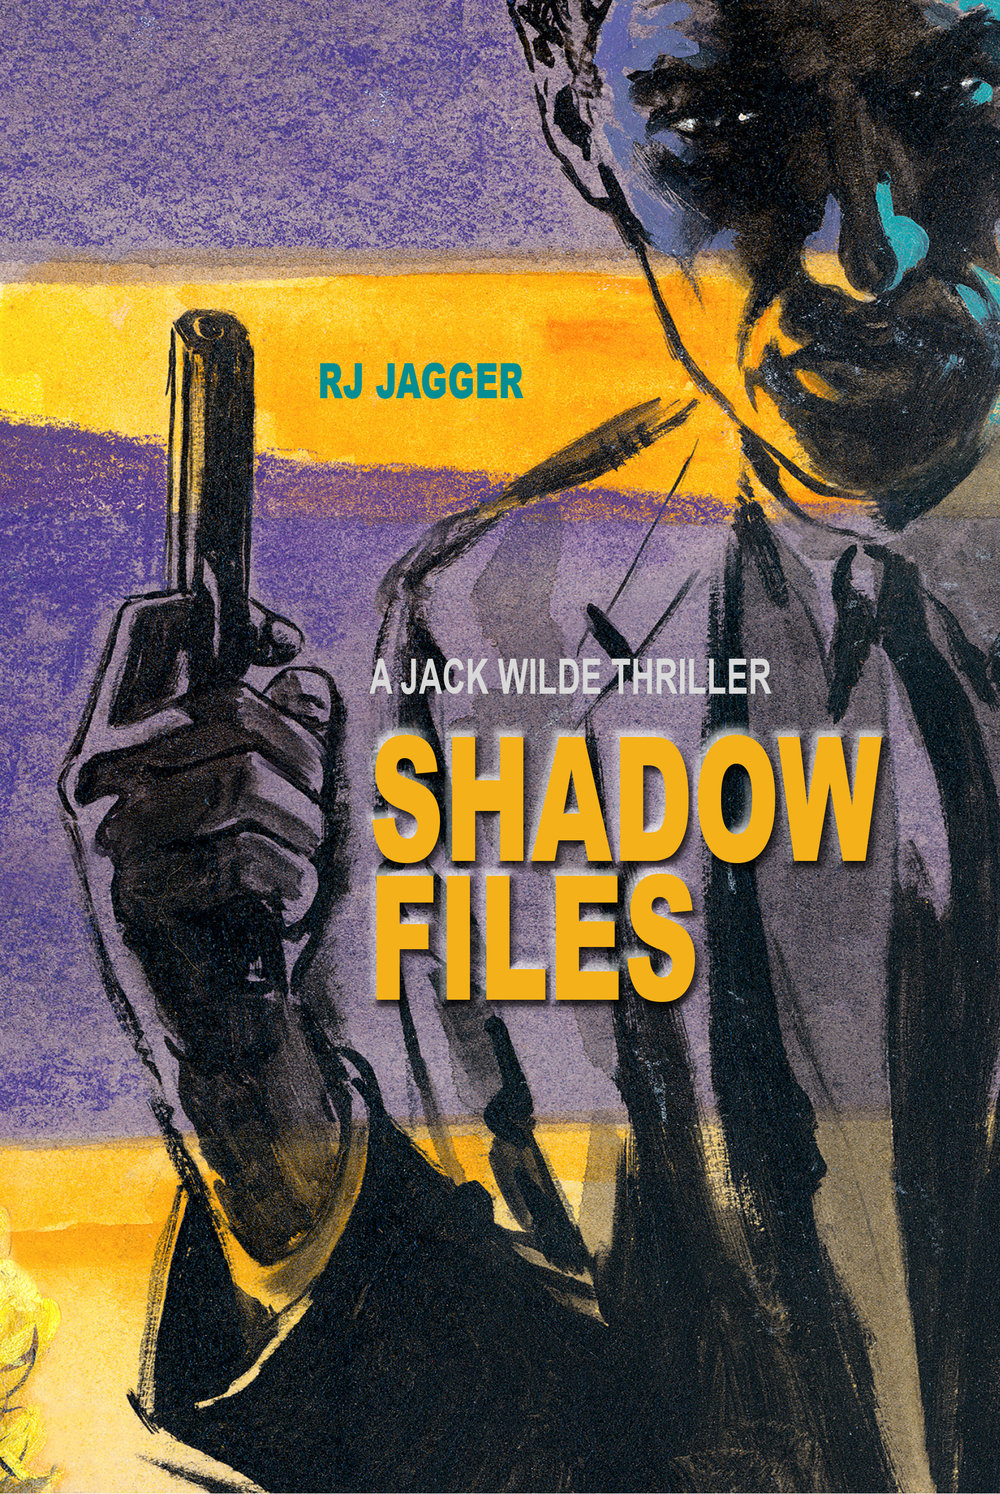 SHADOW FILES - Private investigator Jack Wilde lives in an edgy 1952 world where nothing is black and white, cigarettes dangle from ruby-red lips, and even the simplest case has more dangerous twists than whiskey-soaked jazz. In this riveting pulp noir thriller from acclaimed author R.J. Jagger, Wilde  takes an assignment for a beautiful local attorney and soon finds that he has been pulled into a deadly vortex with no visible means of escape.